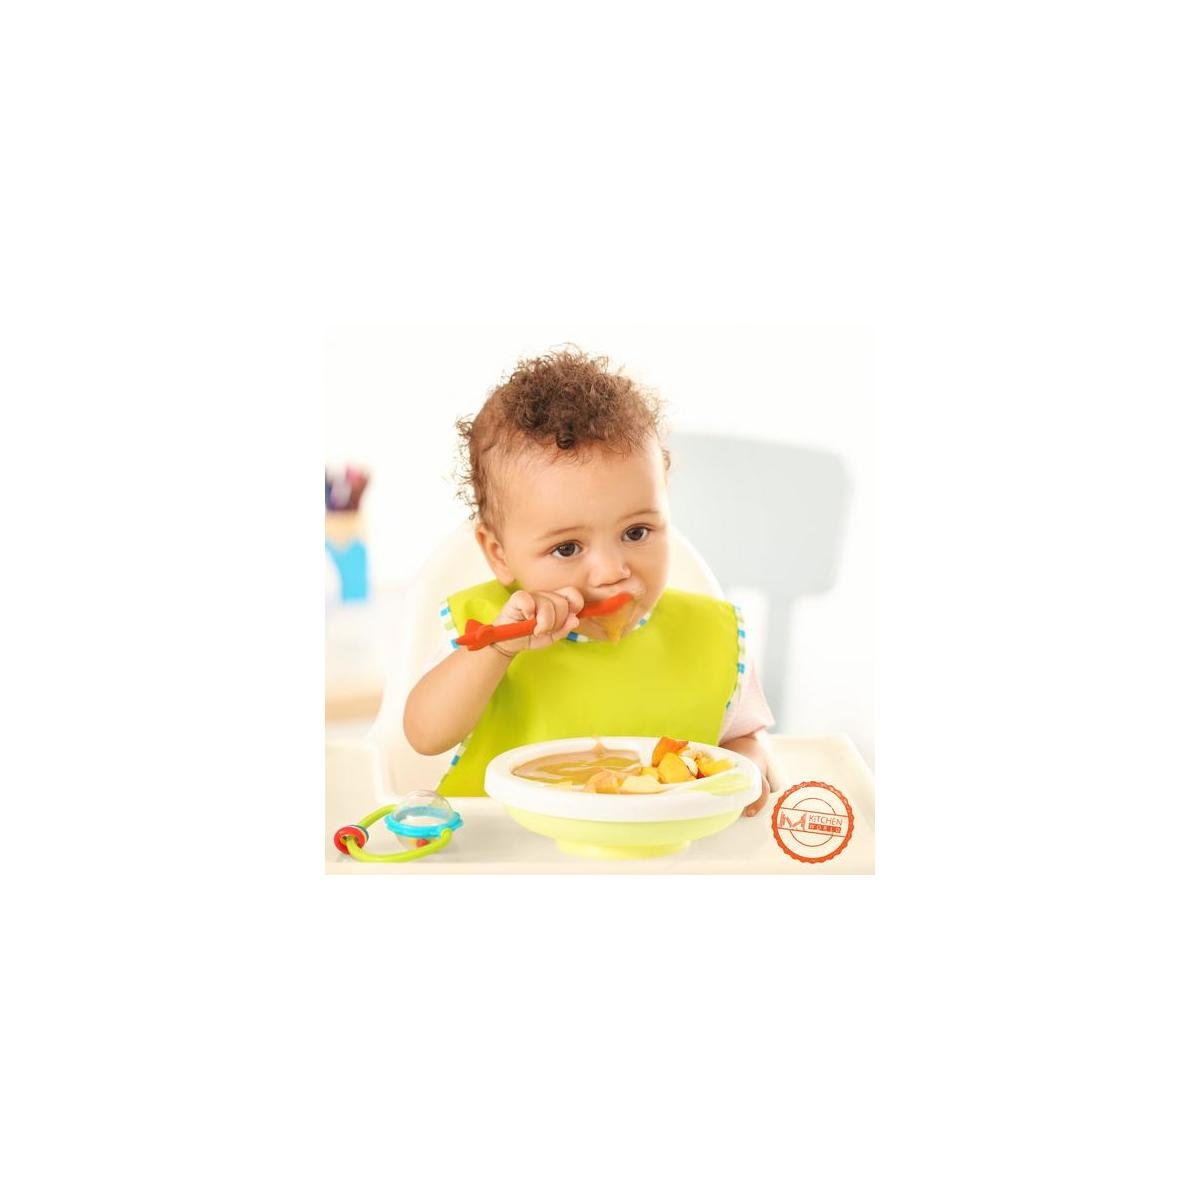 M KITCHEN WORLD Silicone Baby Spoons Self Feeding Infant Training Spoon   First Stage Soft Tip Starter Teether for Baby   Led Weaning Gum-Friendly BPA Free 2 Pack Perfect Baby Shower Gift